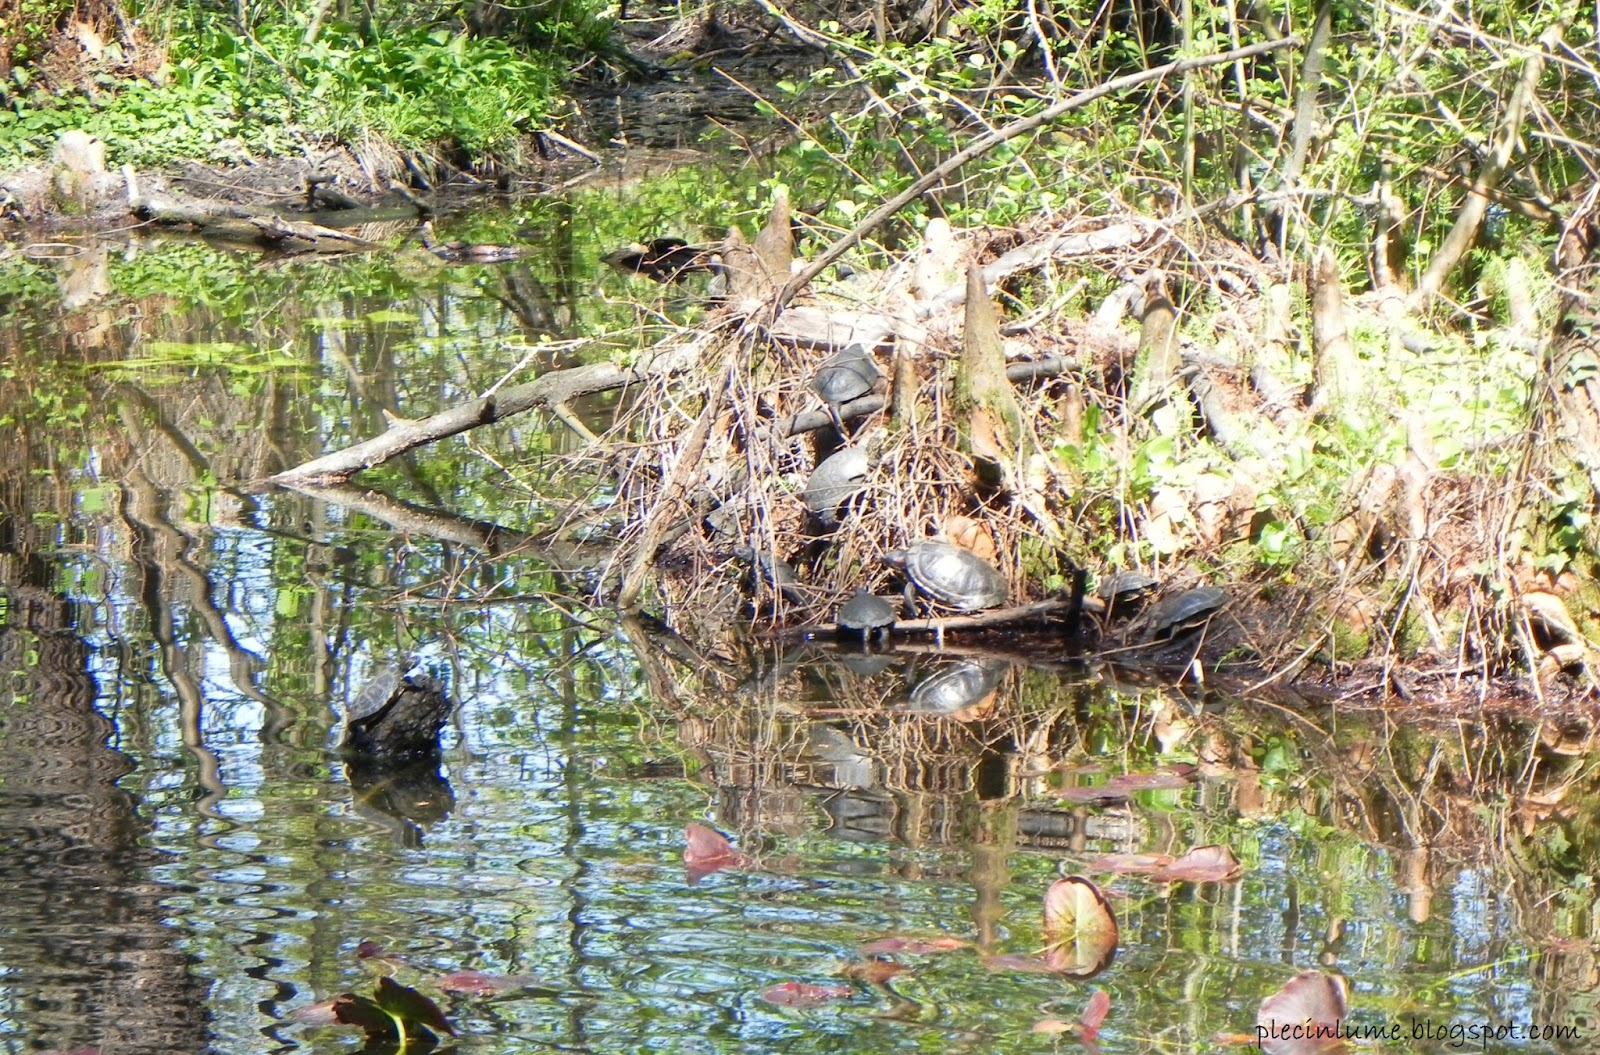 Broaste testoase in Gradina Botanica / Turtles in Botanical Garden